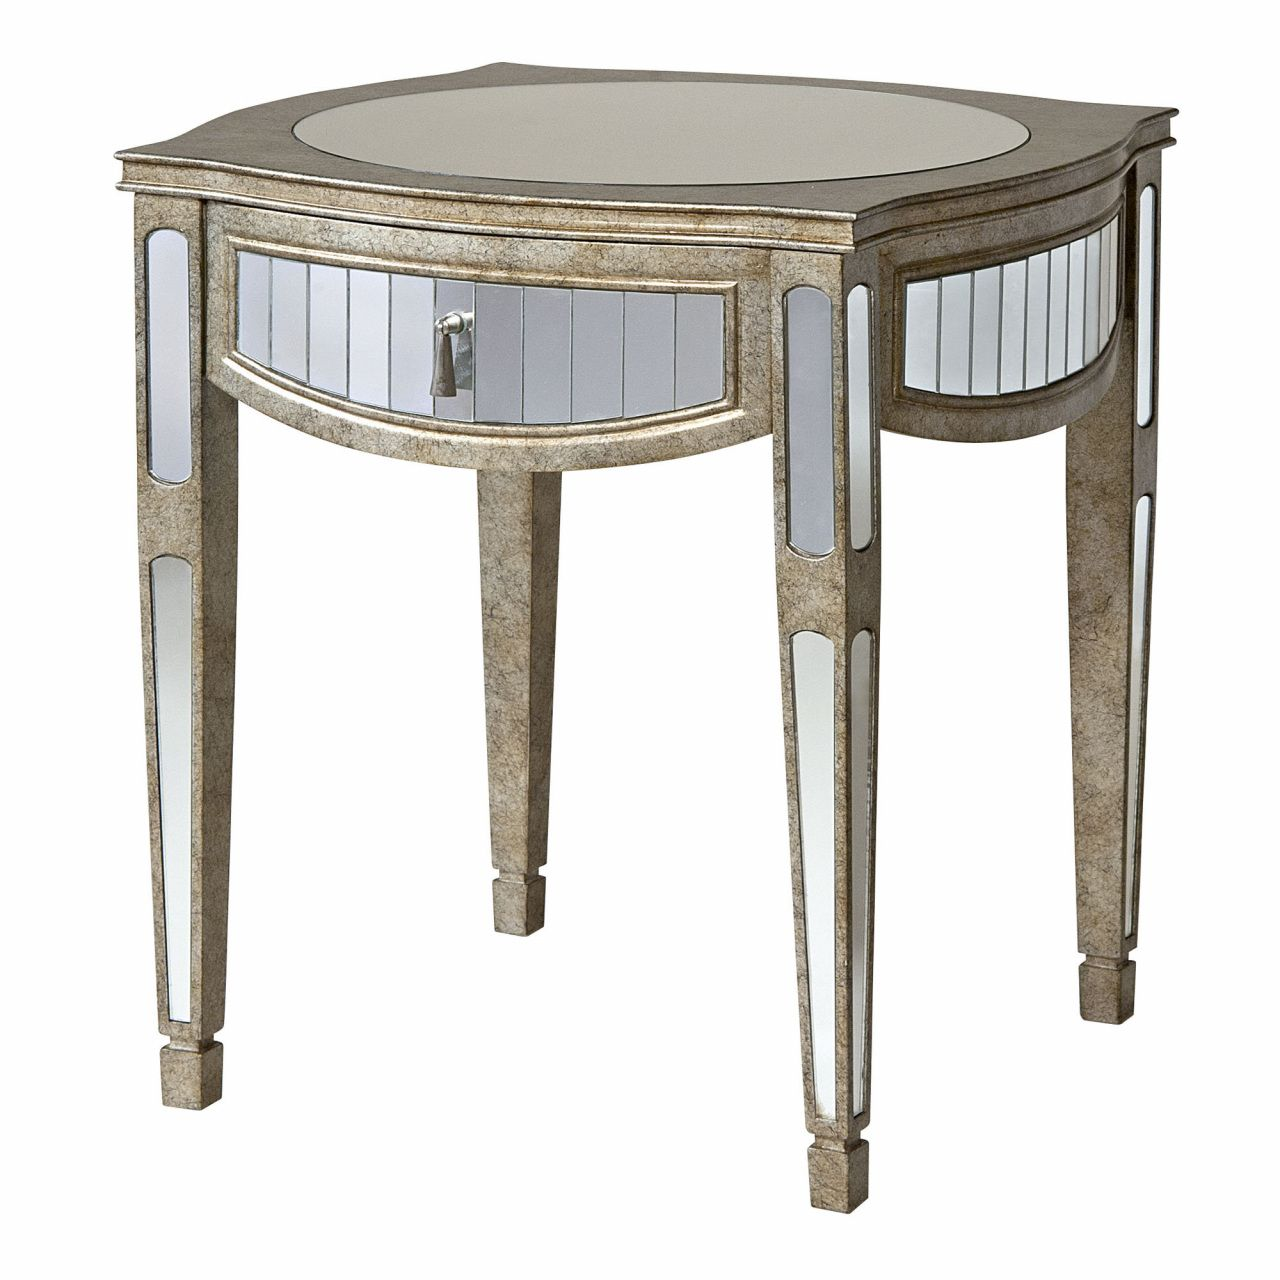 small mirrored accent table elite modern furniture check more inch round tablecloth wisteria tiffany style lamps mid century nesting tables wood and glass end outdoor bistro